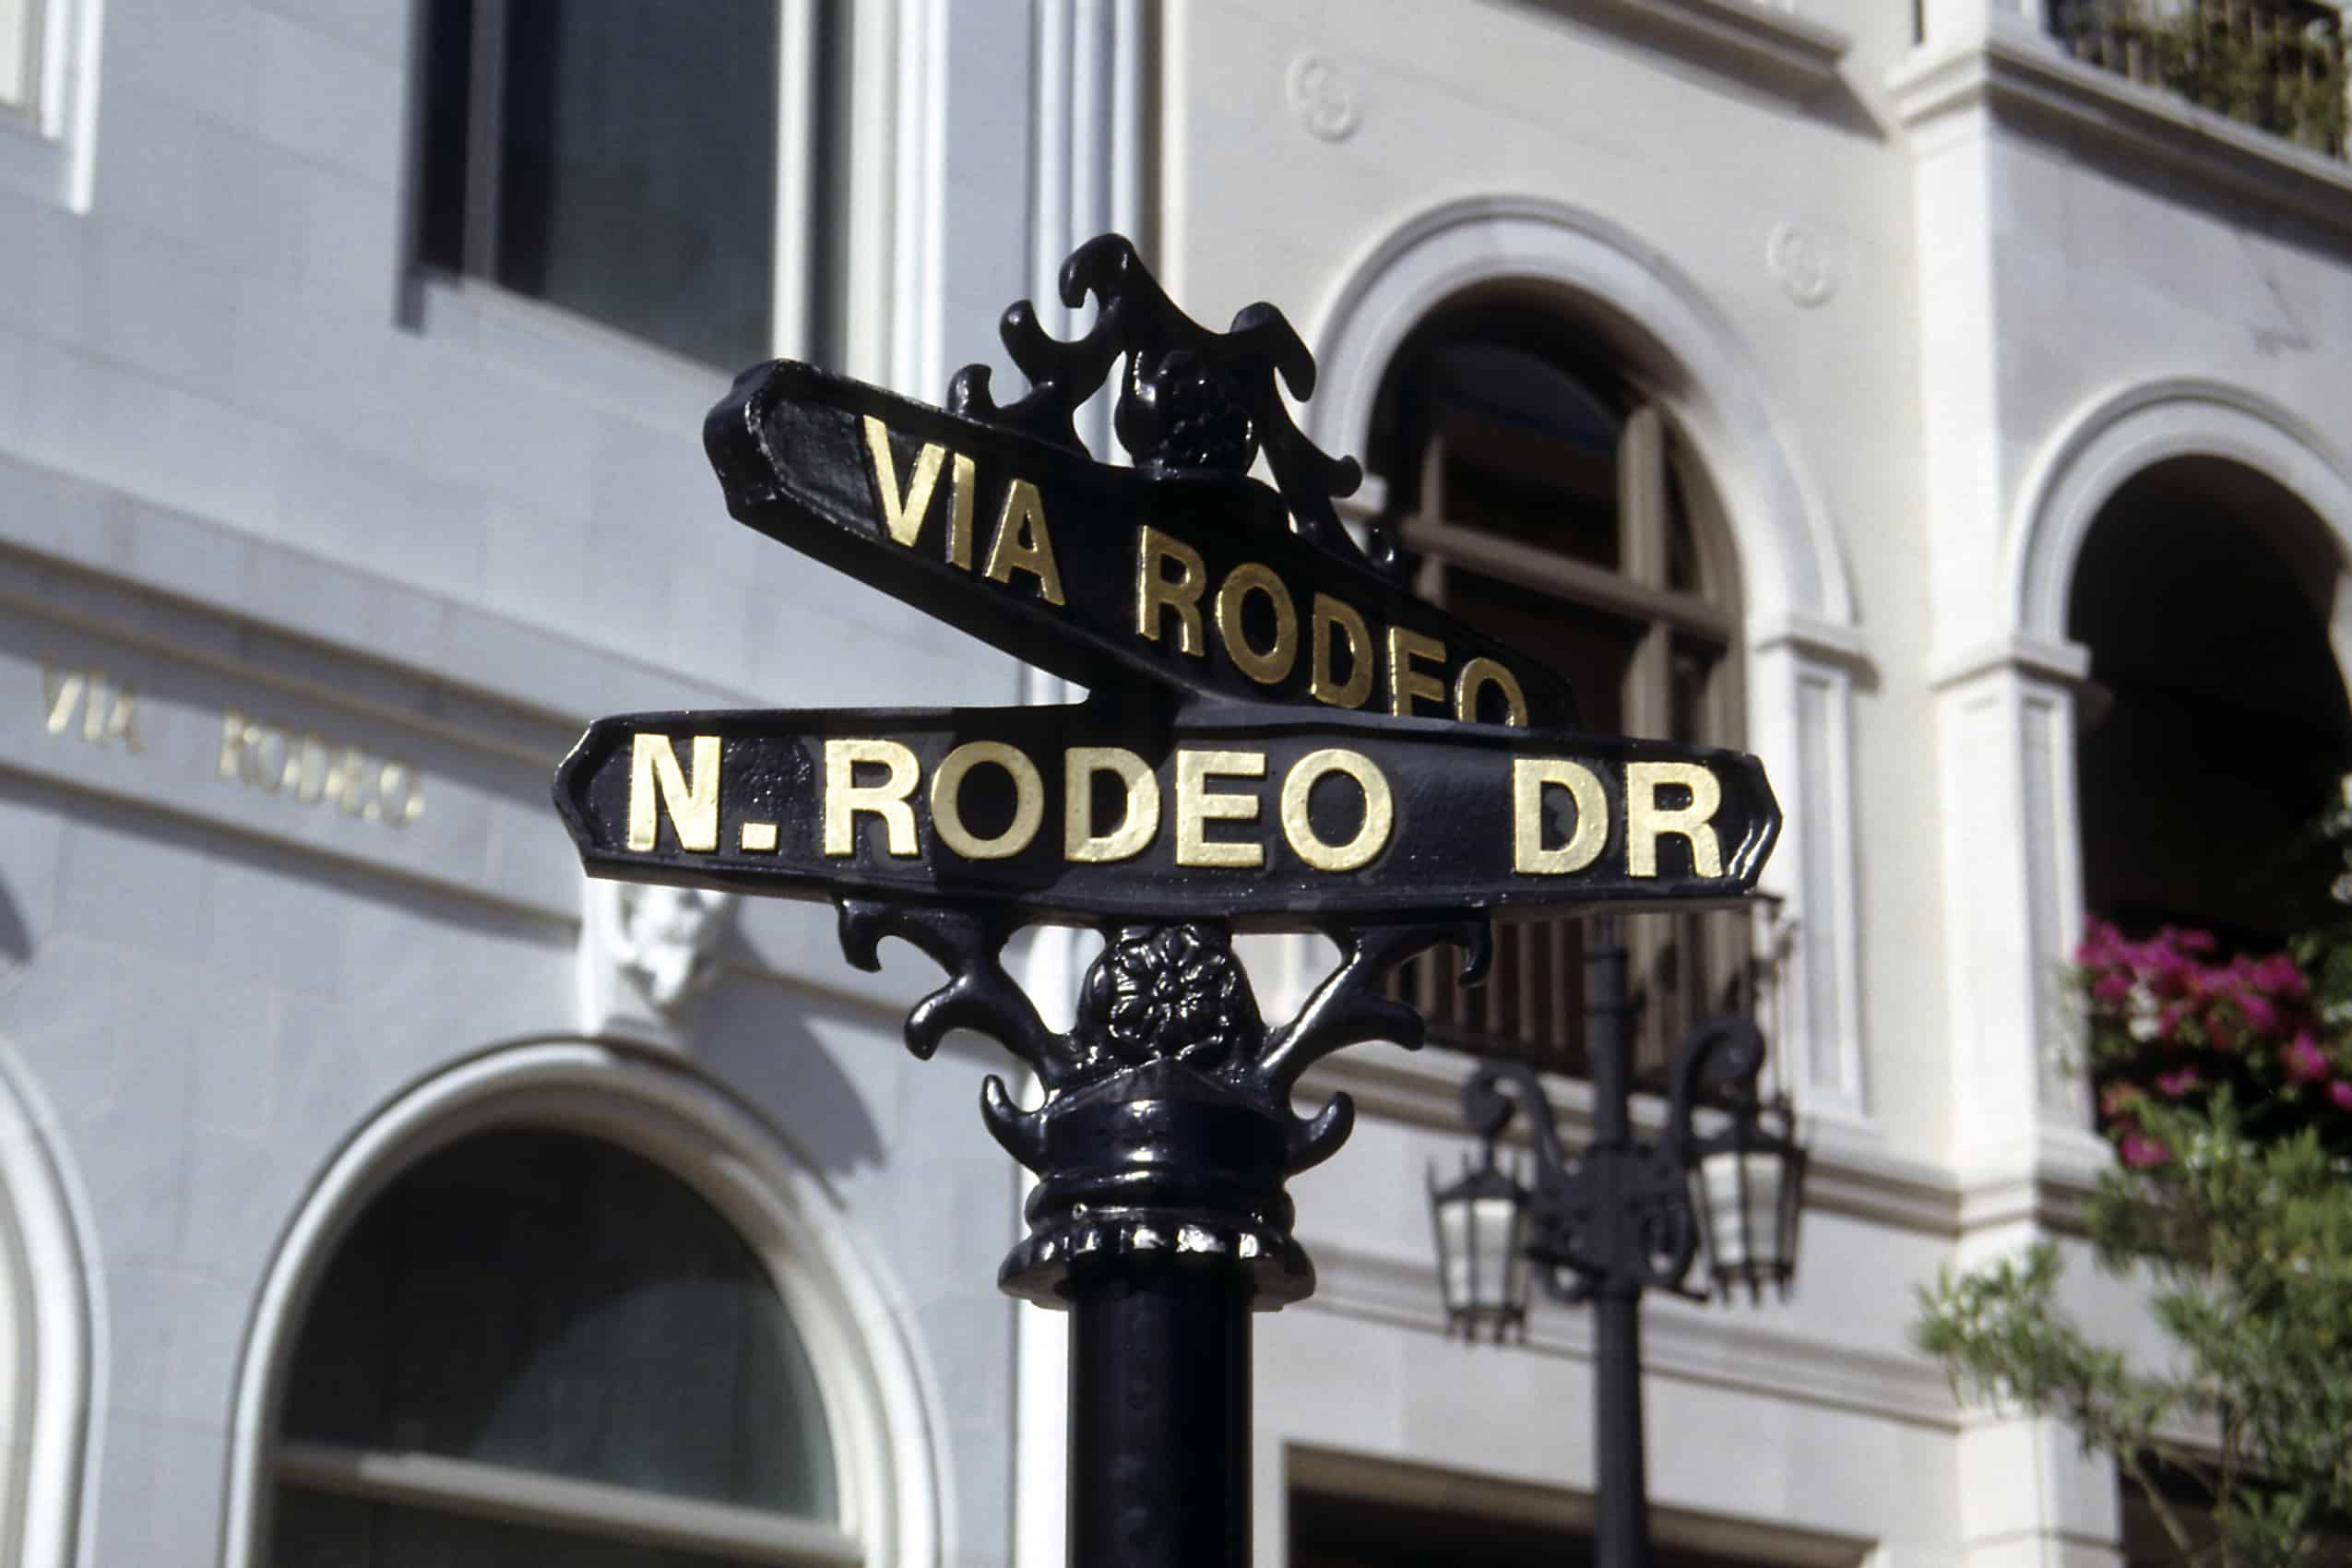 Beverly-Hills-Golden-Triangle-Rodeo-Dr-Beverly-Dr-Luxury-Shopping-Hollywood-life-Beverly-Hills-Magazine-Jacqueline-Maddison